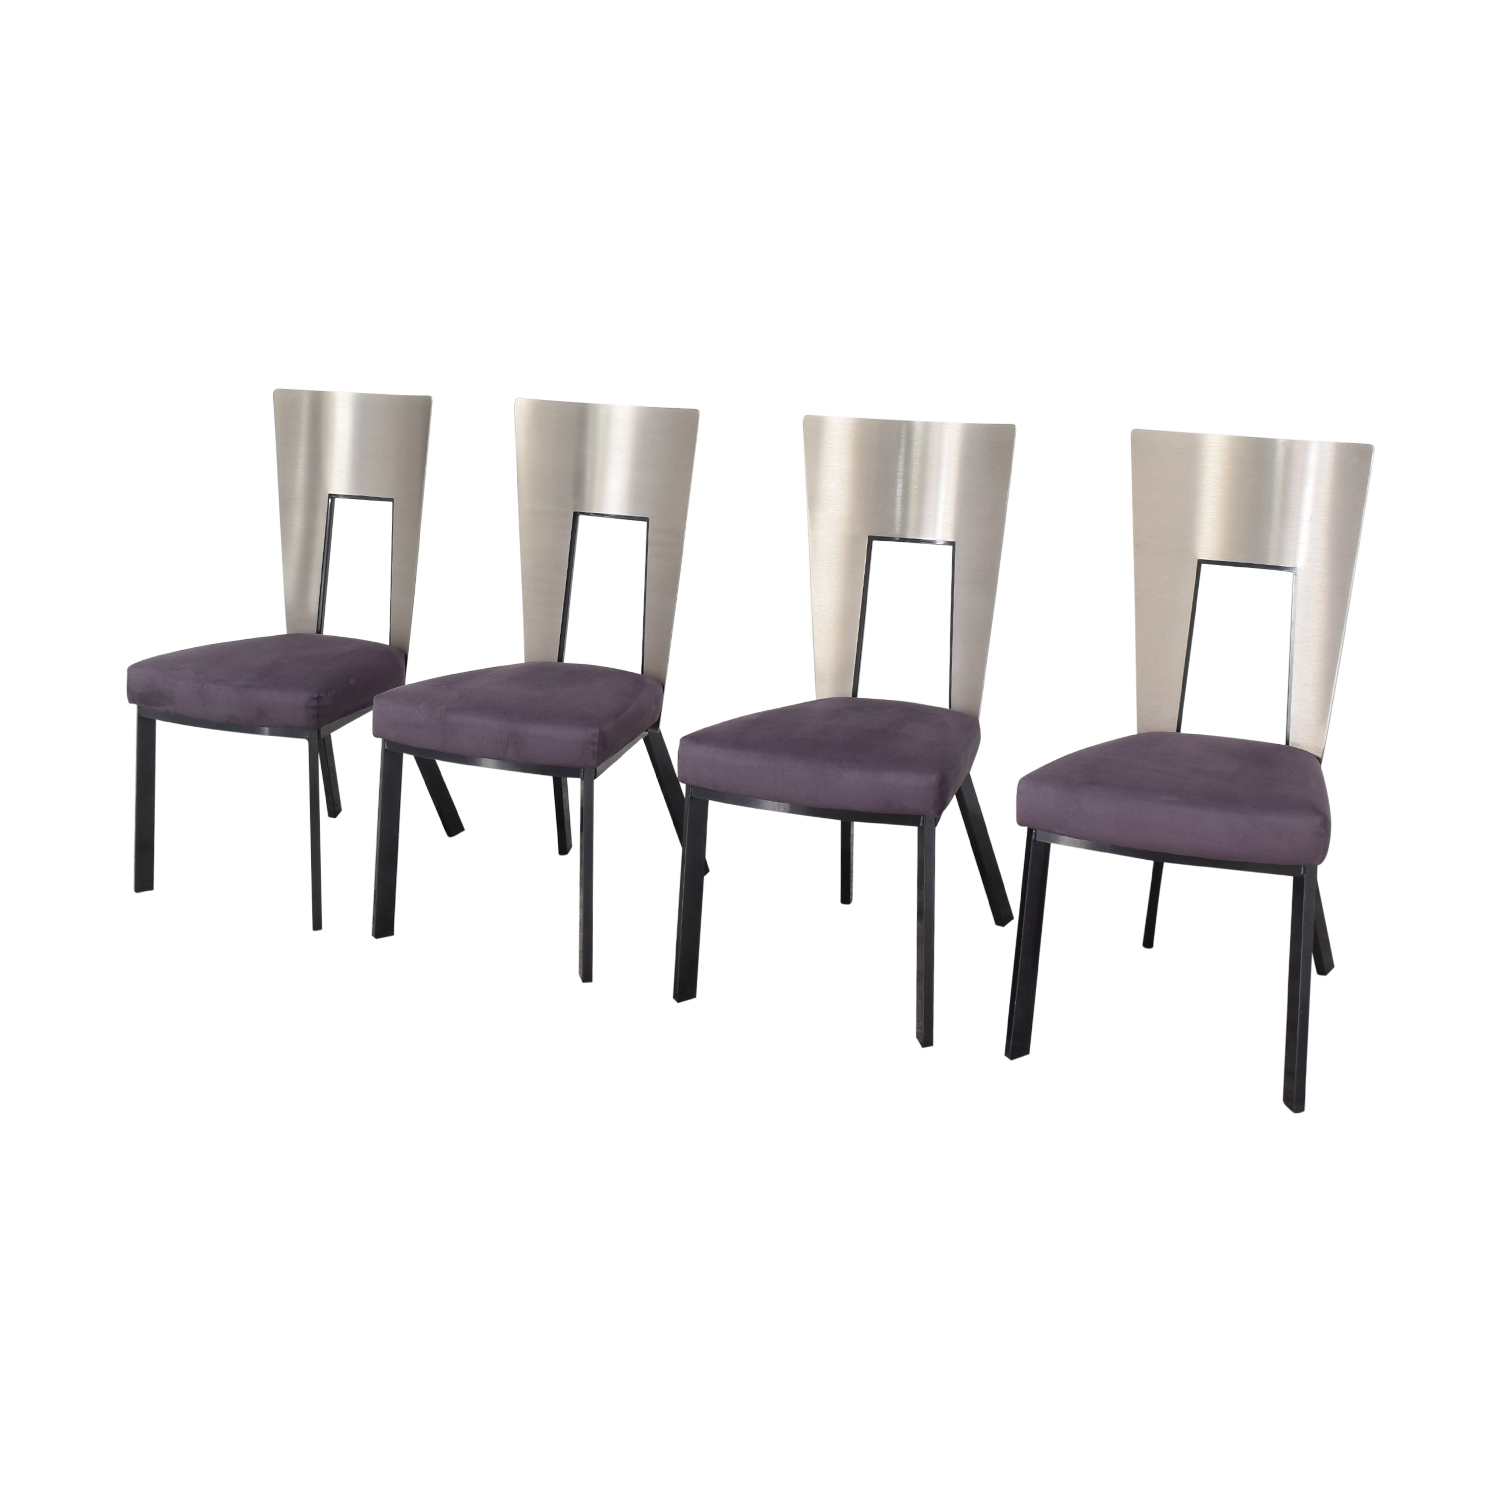 Elite Modern Regal Dining Chairs / Dining Chairs